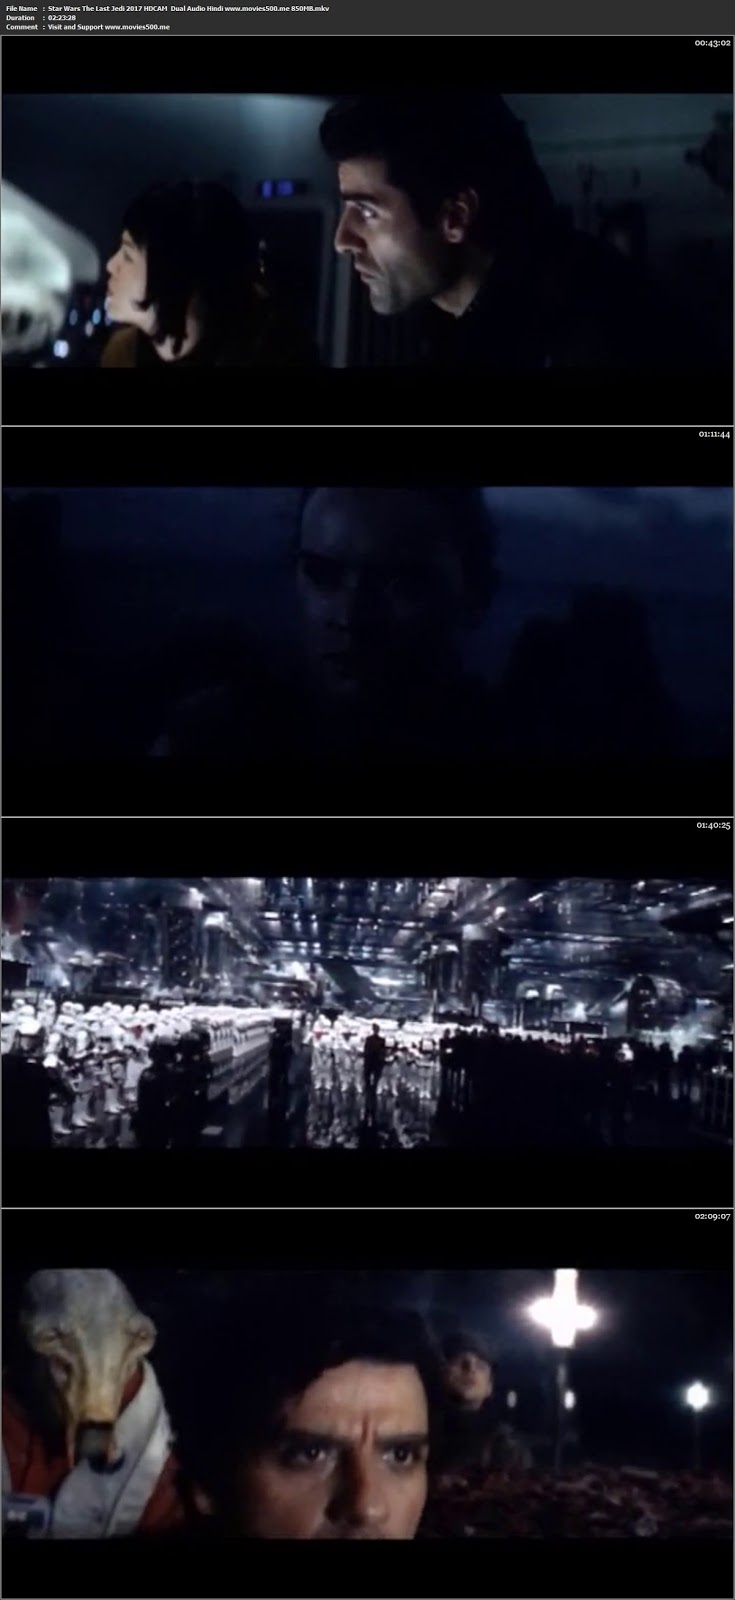 Star Wars The Last Jedi 2017 Dual Audio Hindi HDCAM 720p at softwaresonly.com